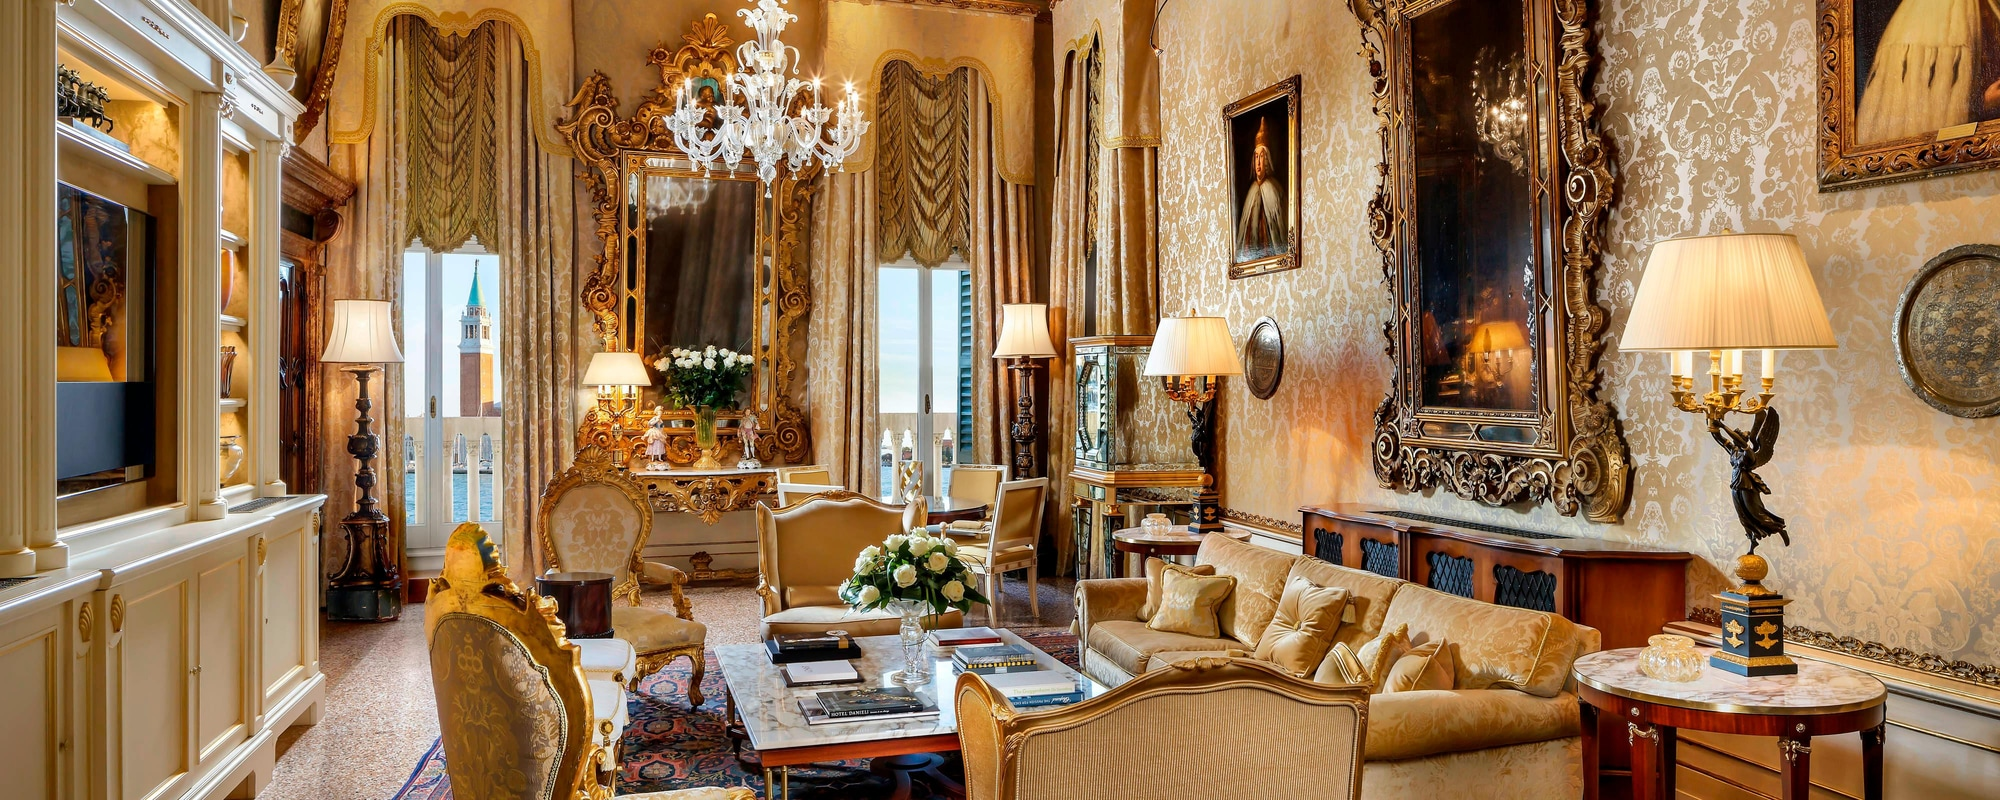 Luxury Hotels Resorts In Venice Hotel Danieli A Luxury